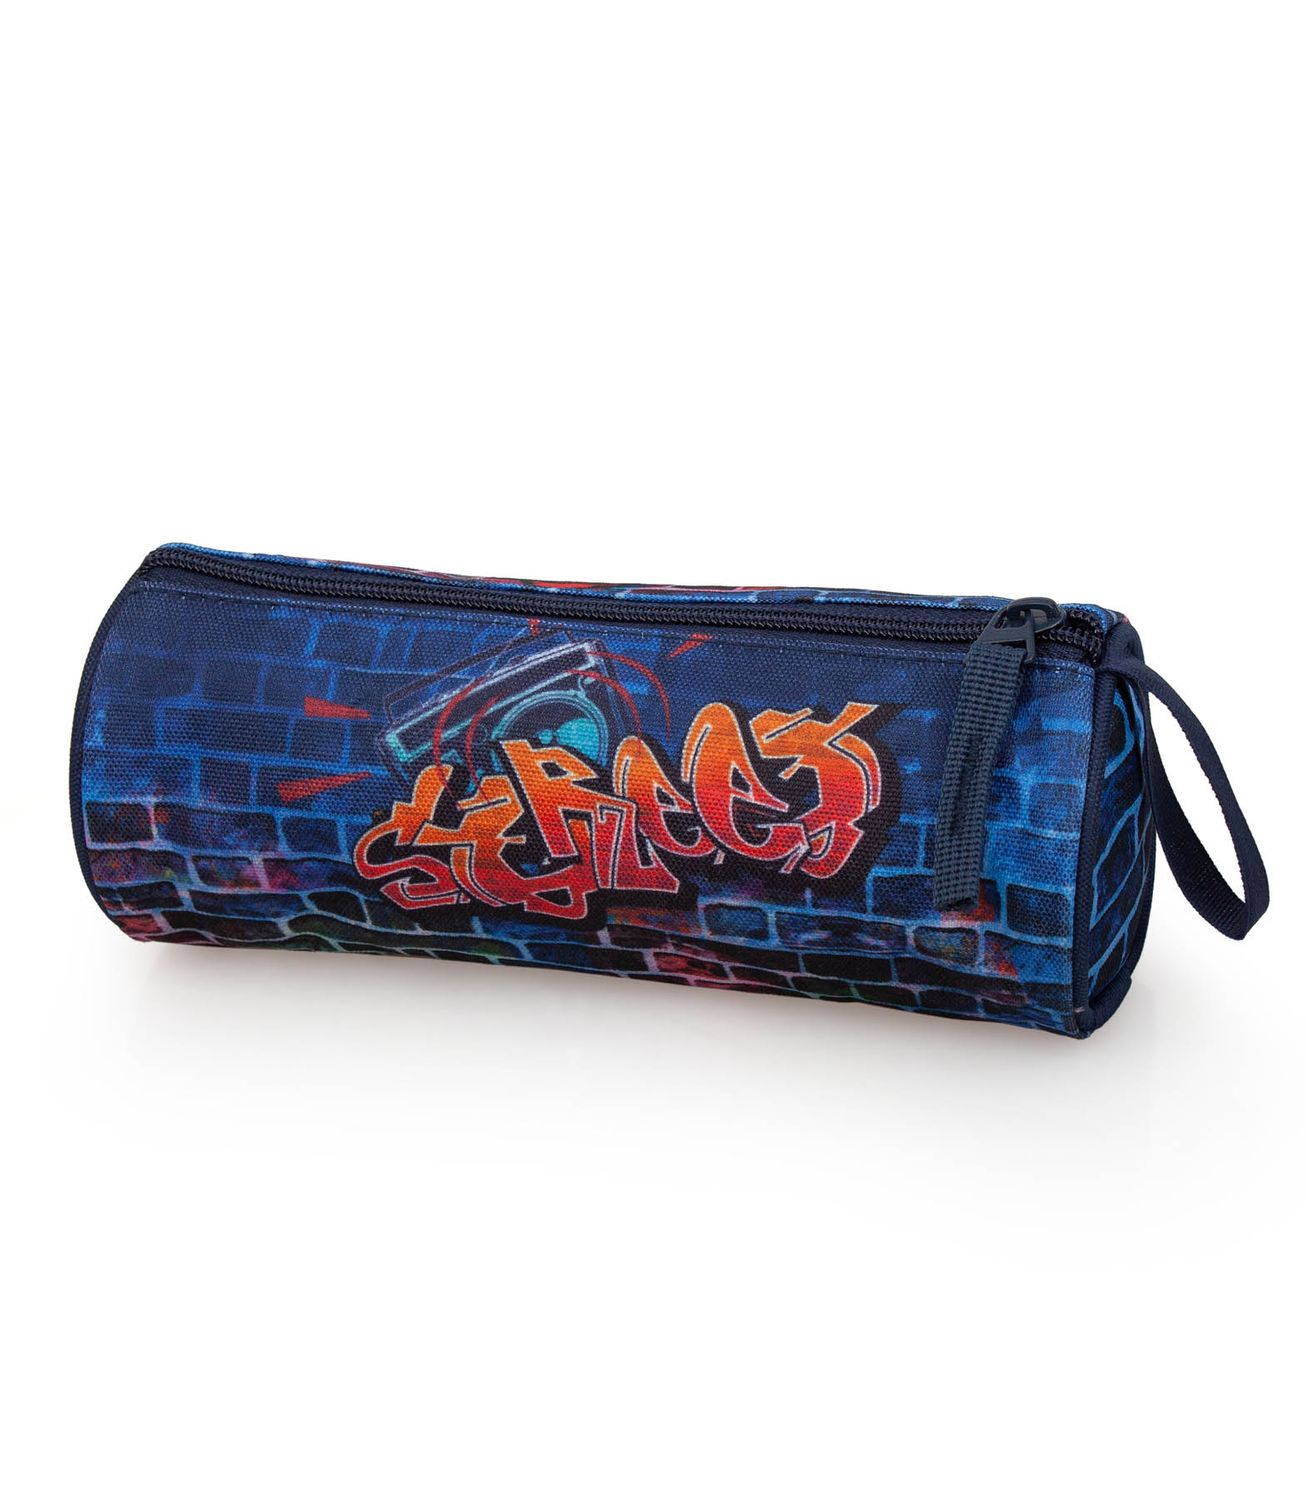 Pencil Case Tube GRAFFITI GHETTO – image 2